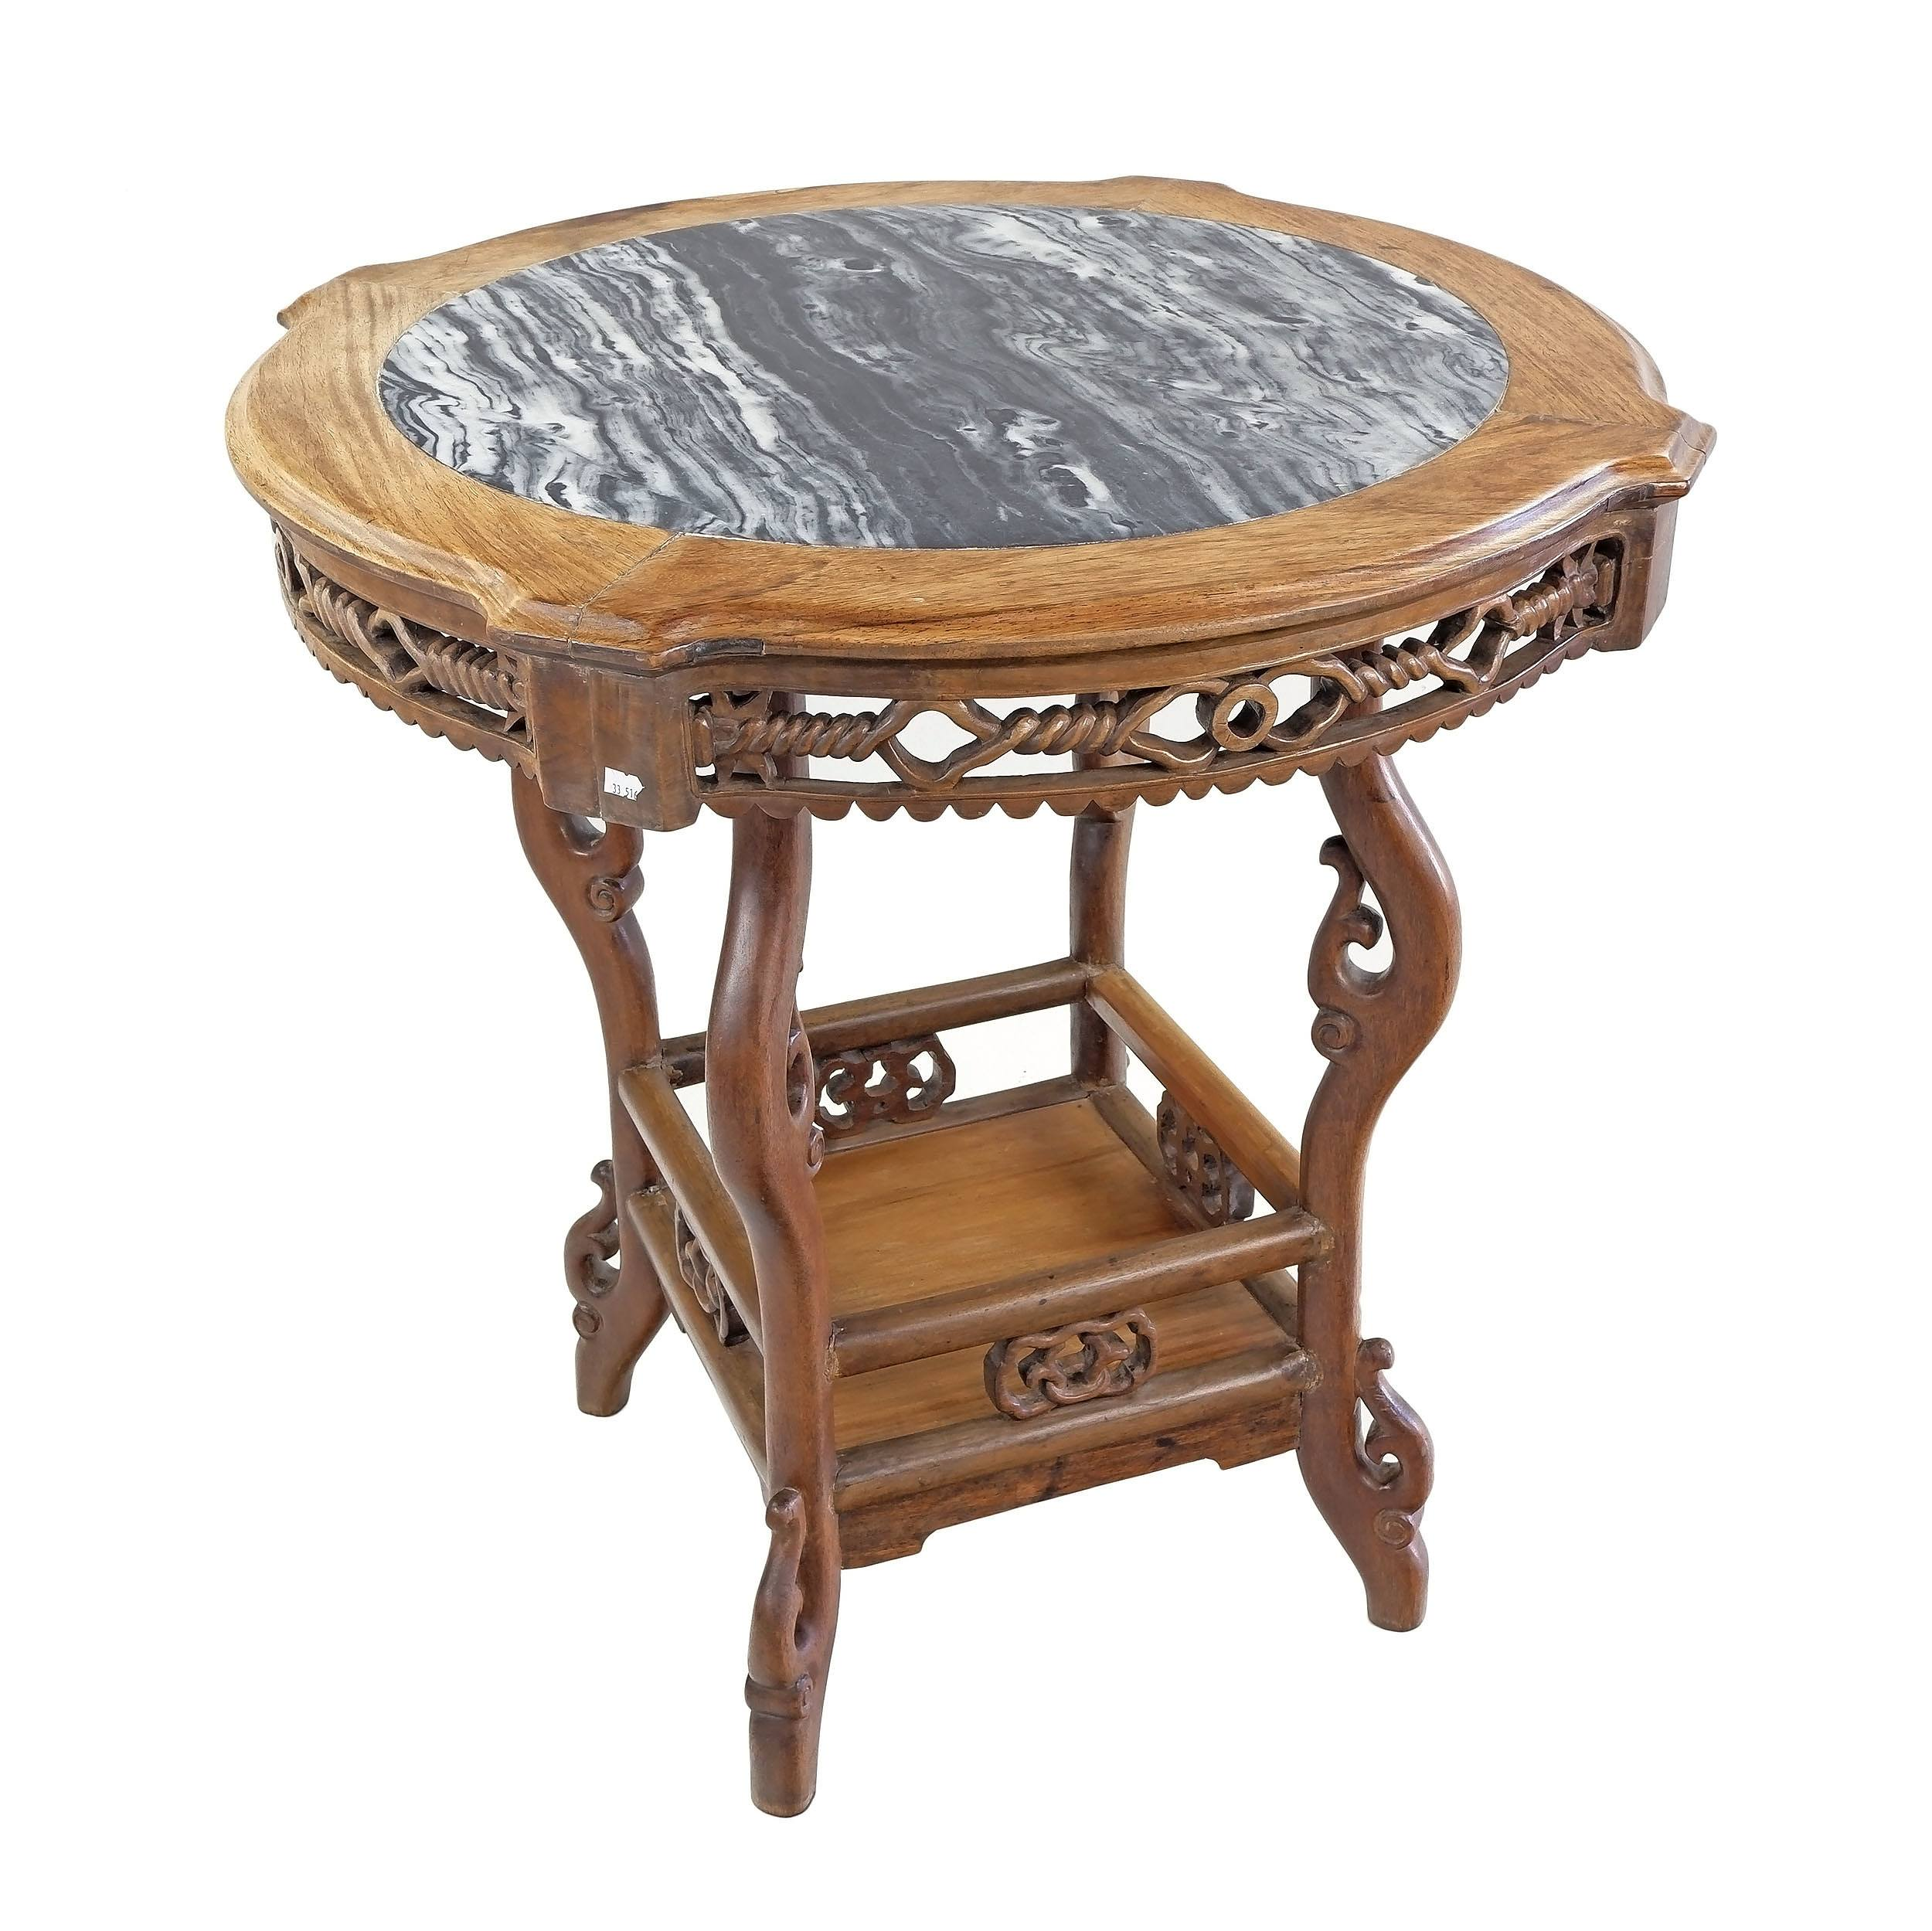 'Chinese Rosewood and Marble Topped Side Table, Early 20th Century'